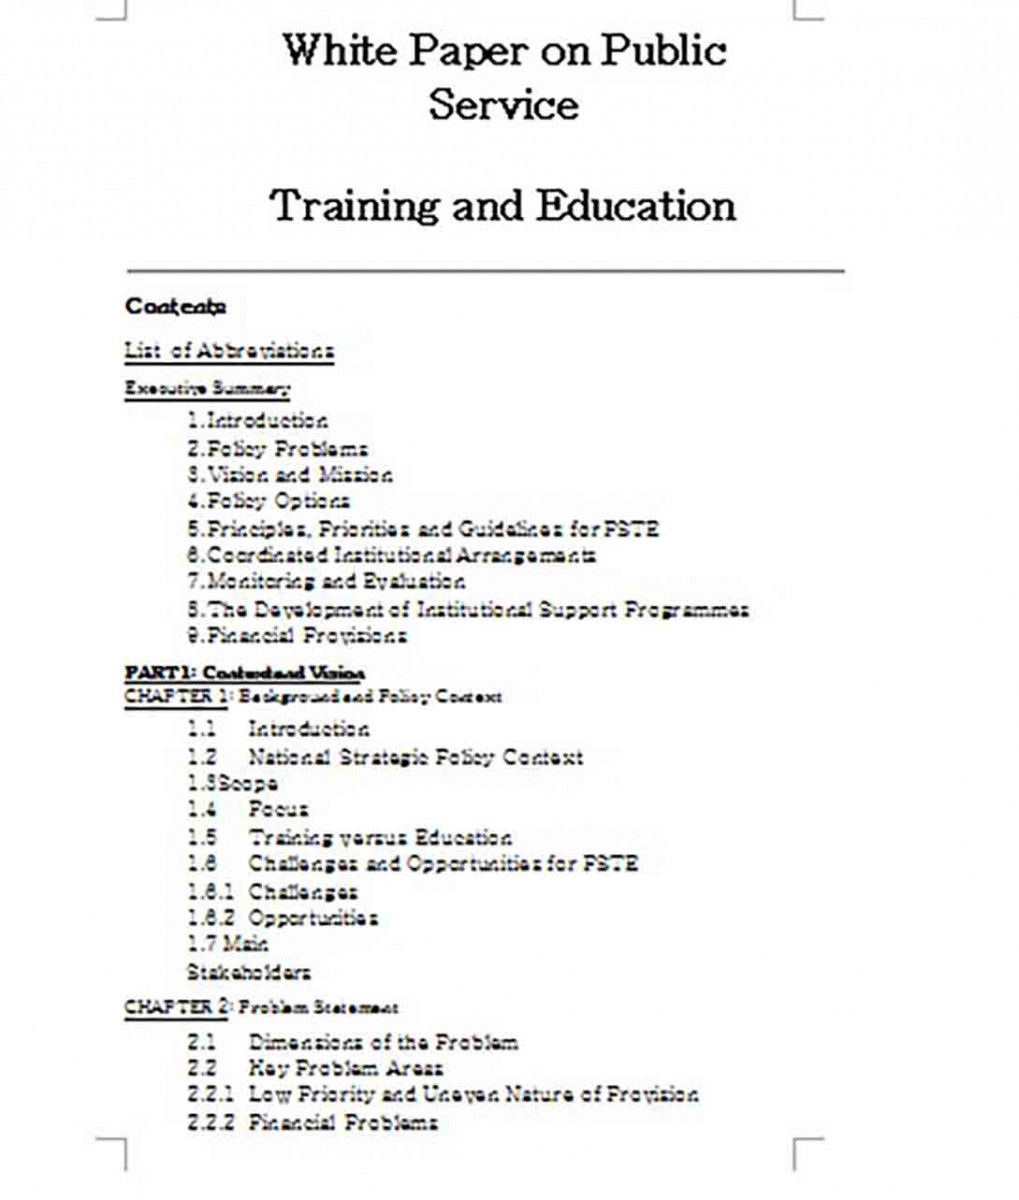 White Paper on Education and Training